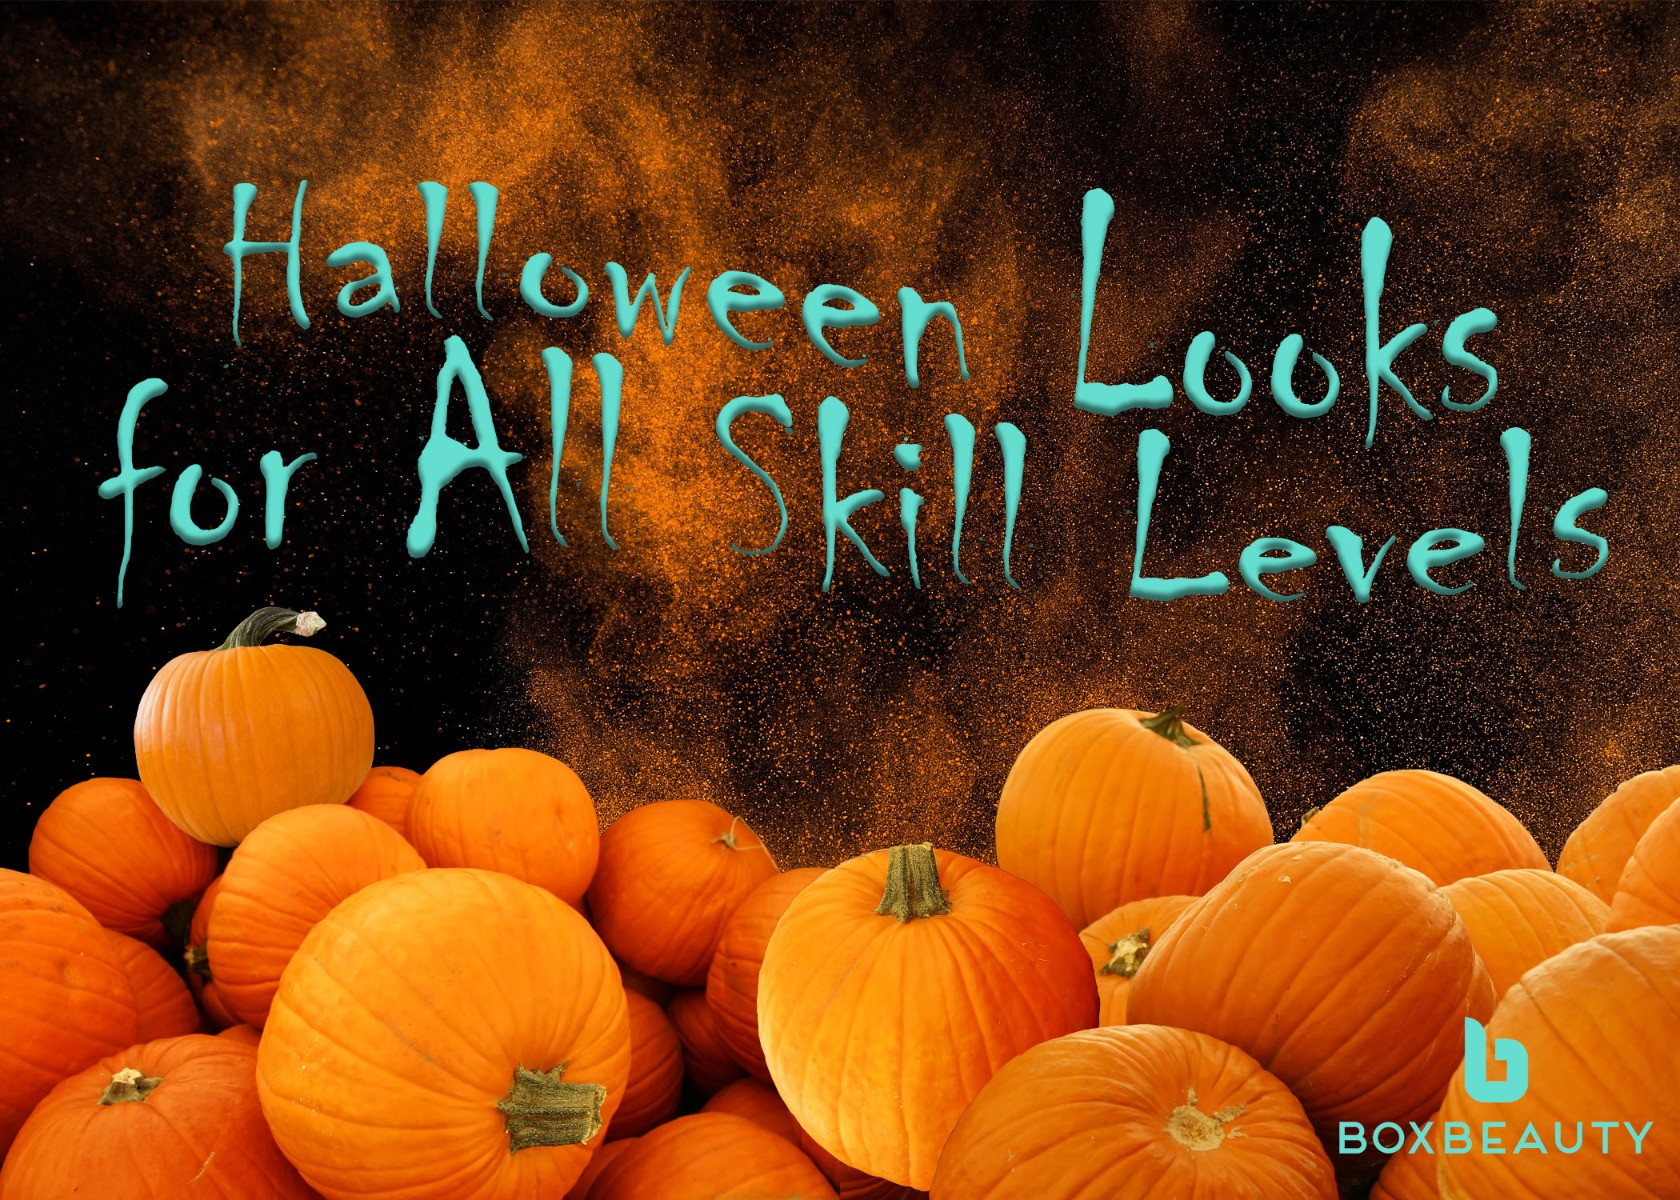 Halloween Looks For All Skill Levels